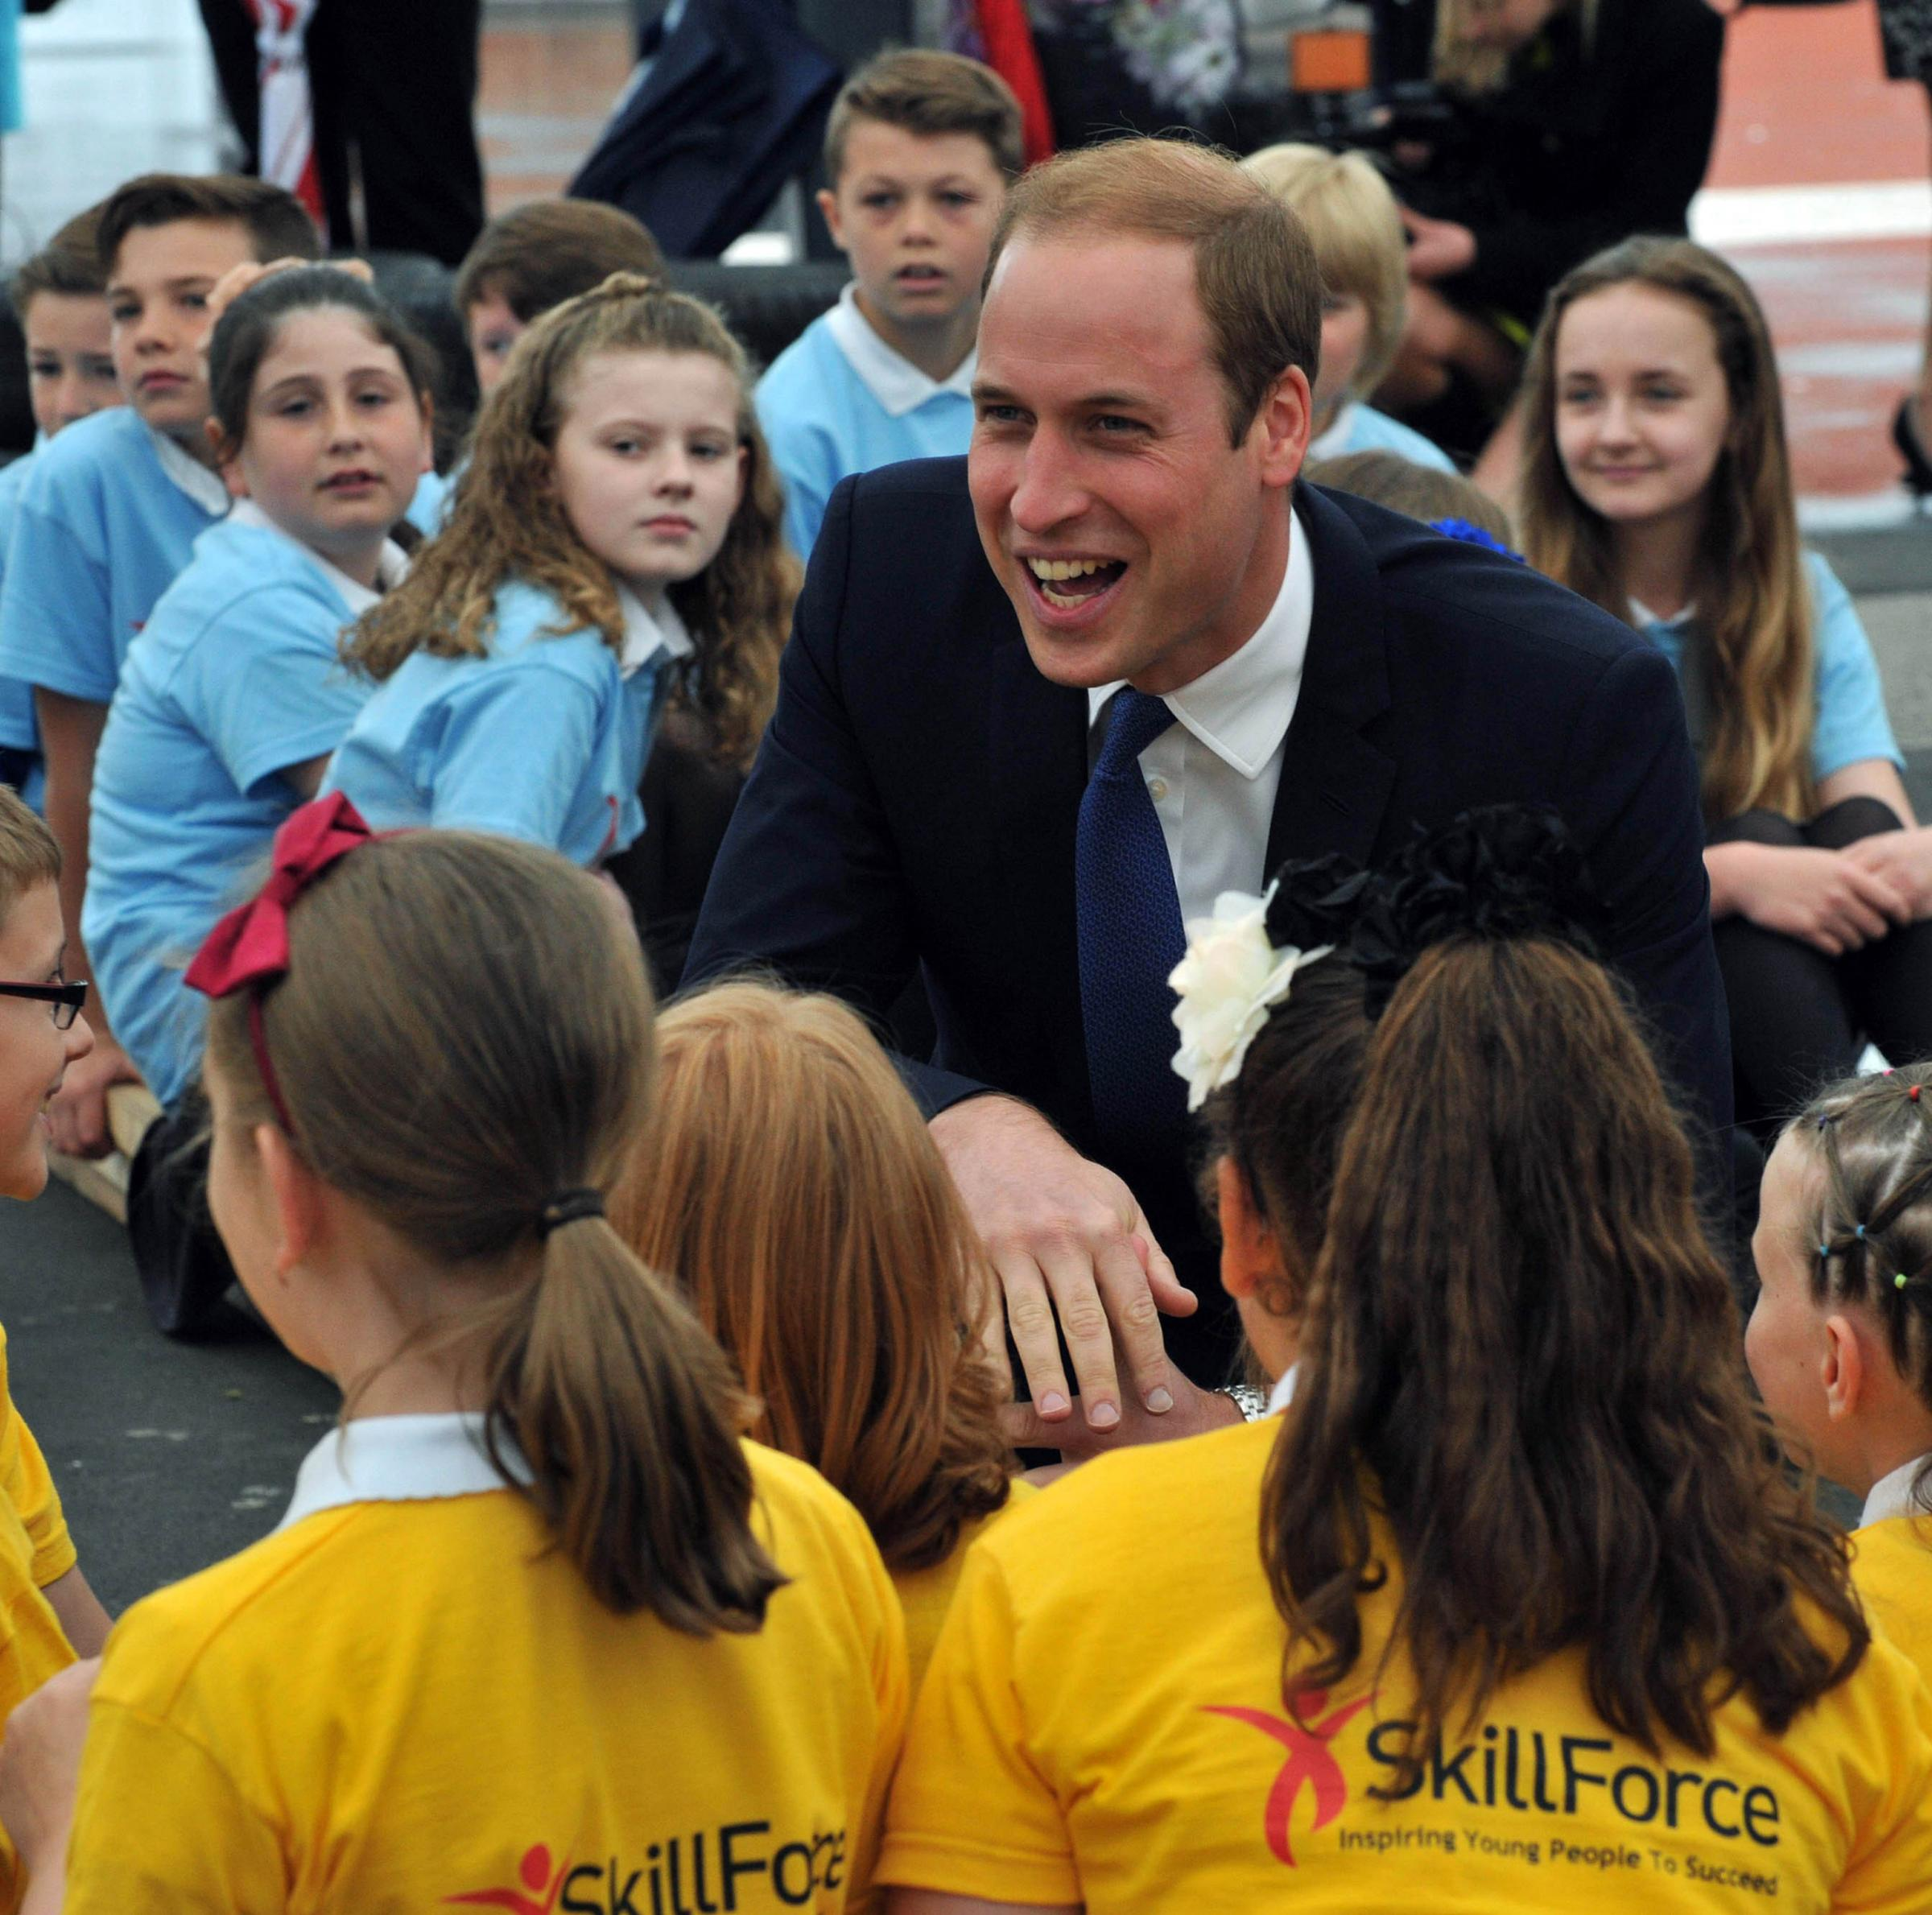 Prince William reveals music tastes during visit to East Yorkshire school